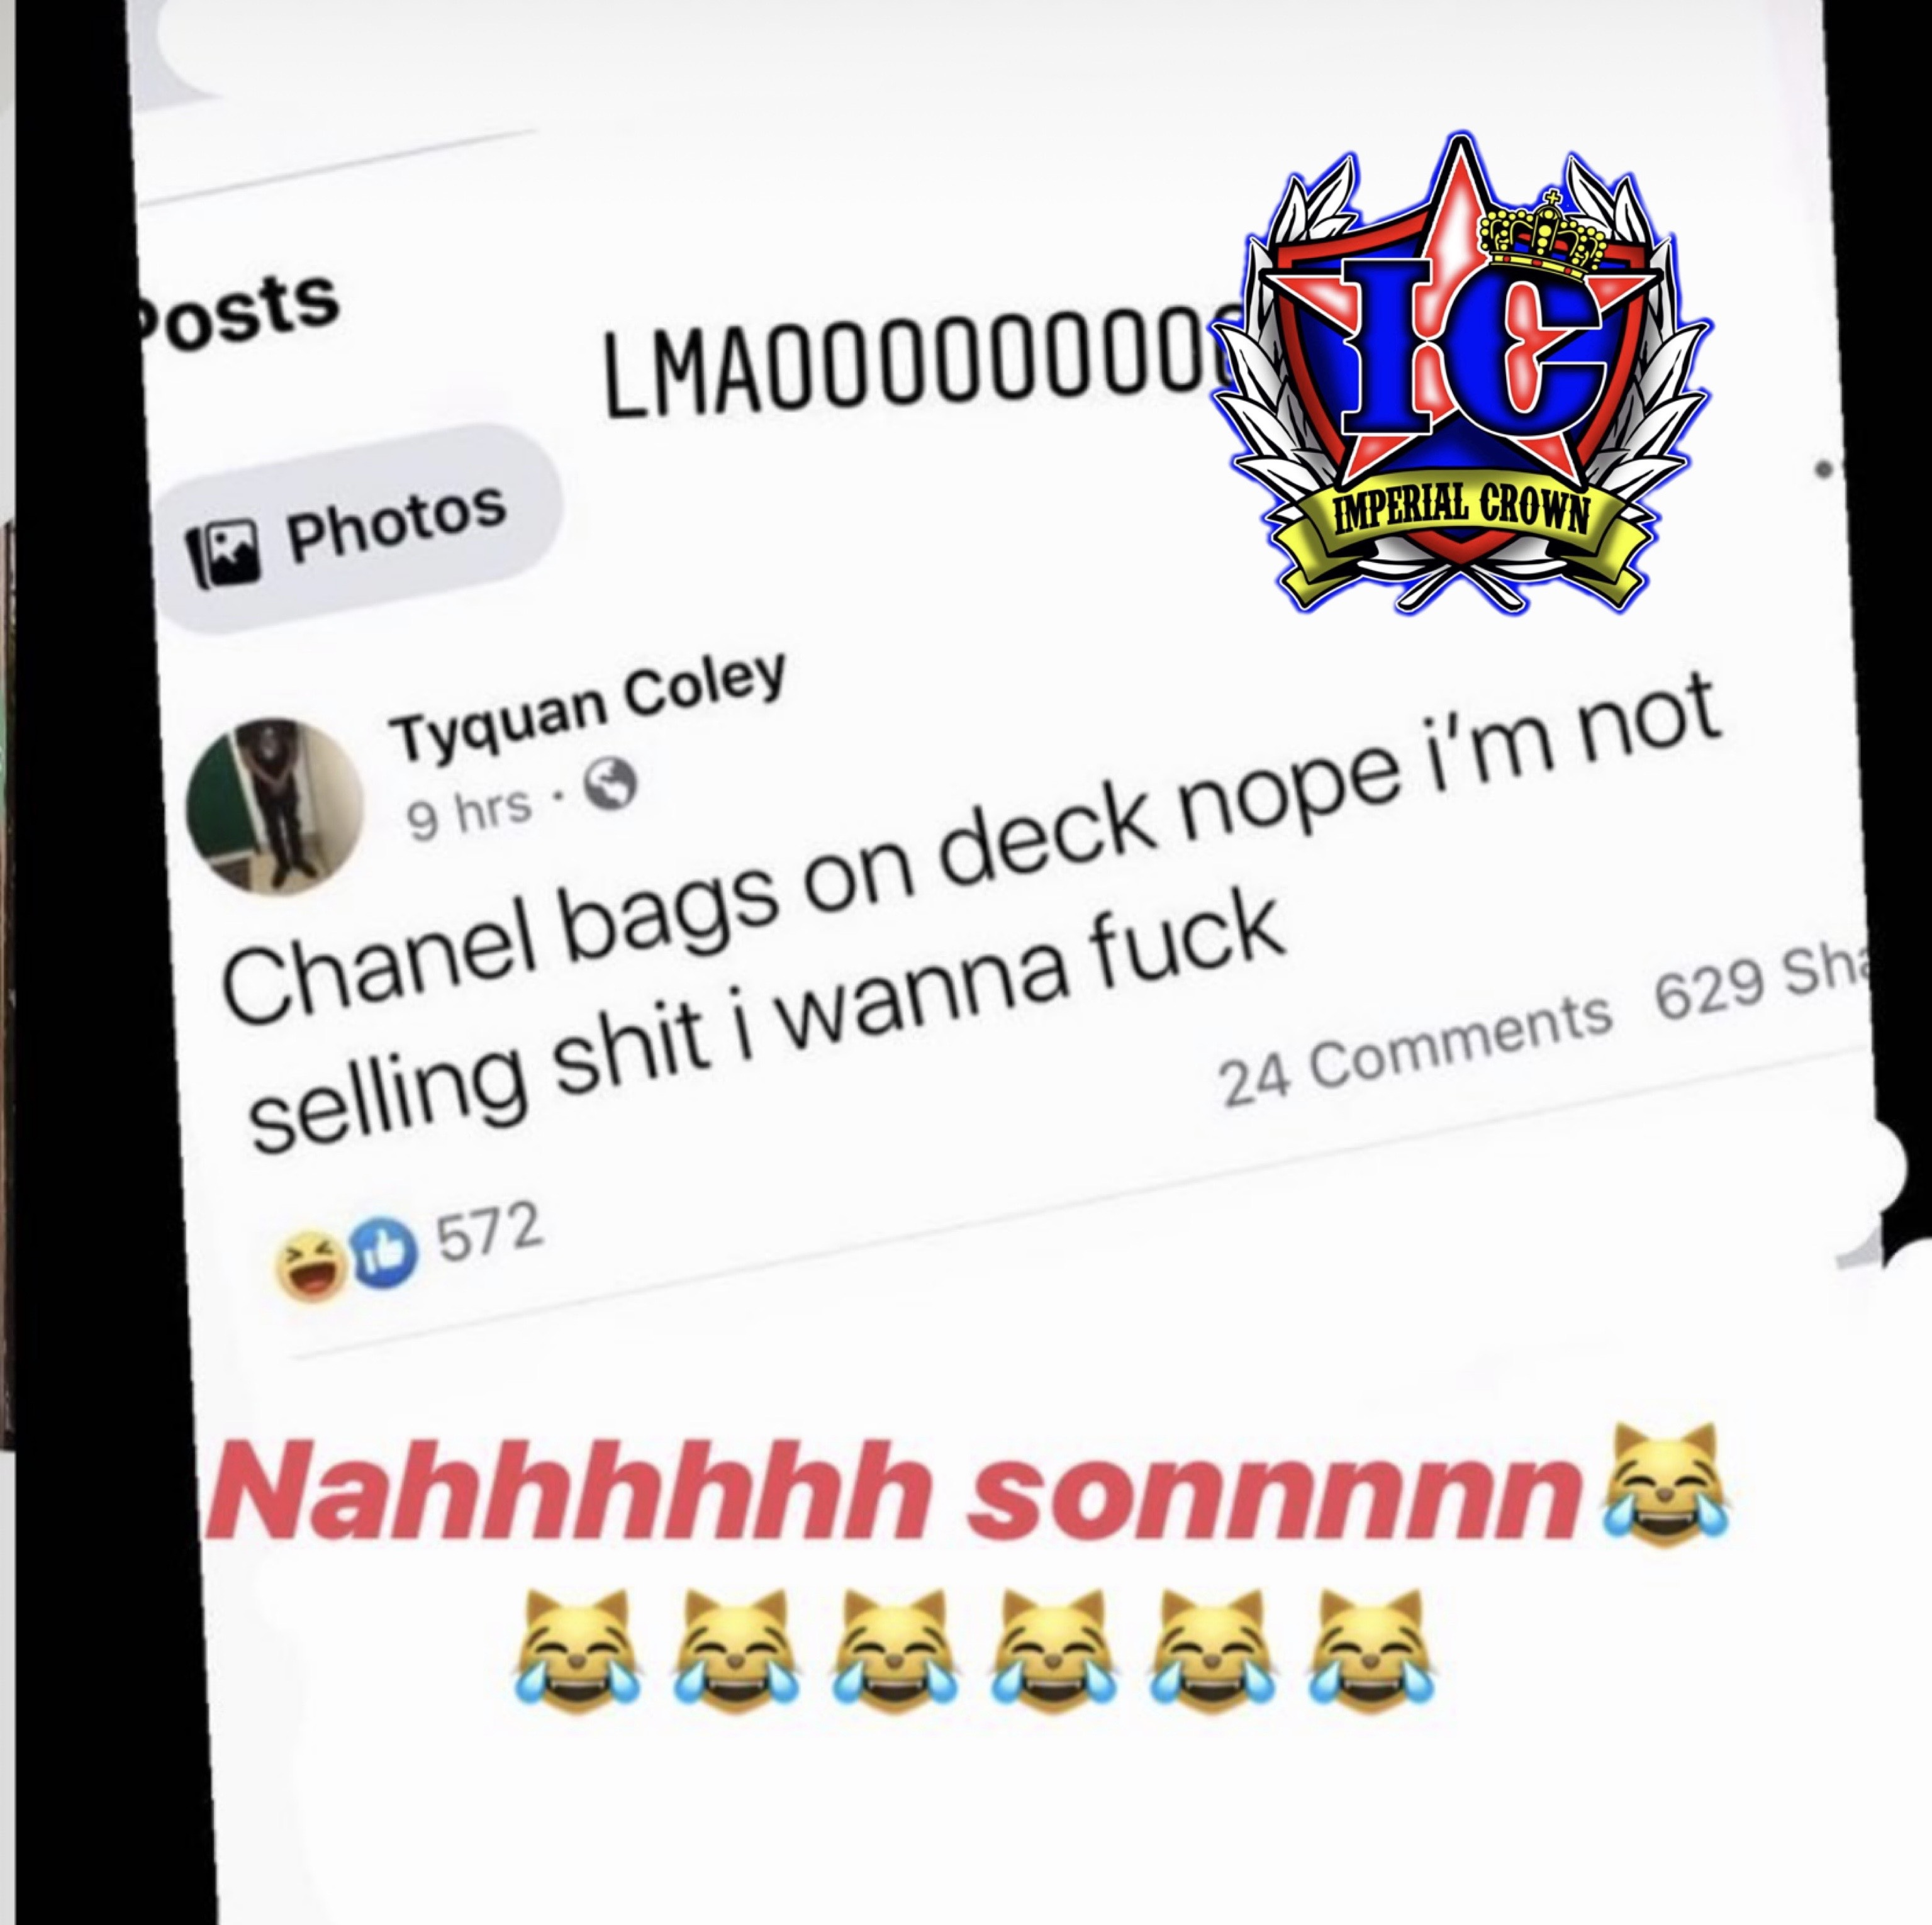 Chanel bags on deck nope I'm not selling shit I wanna fuck